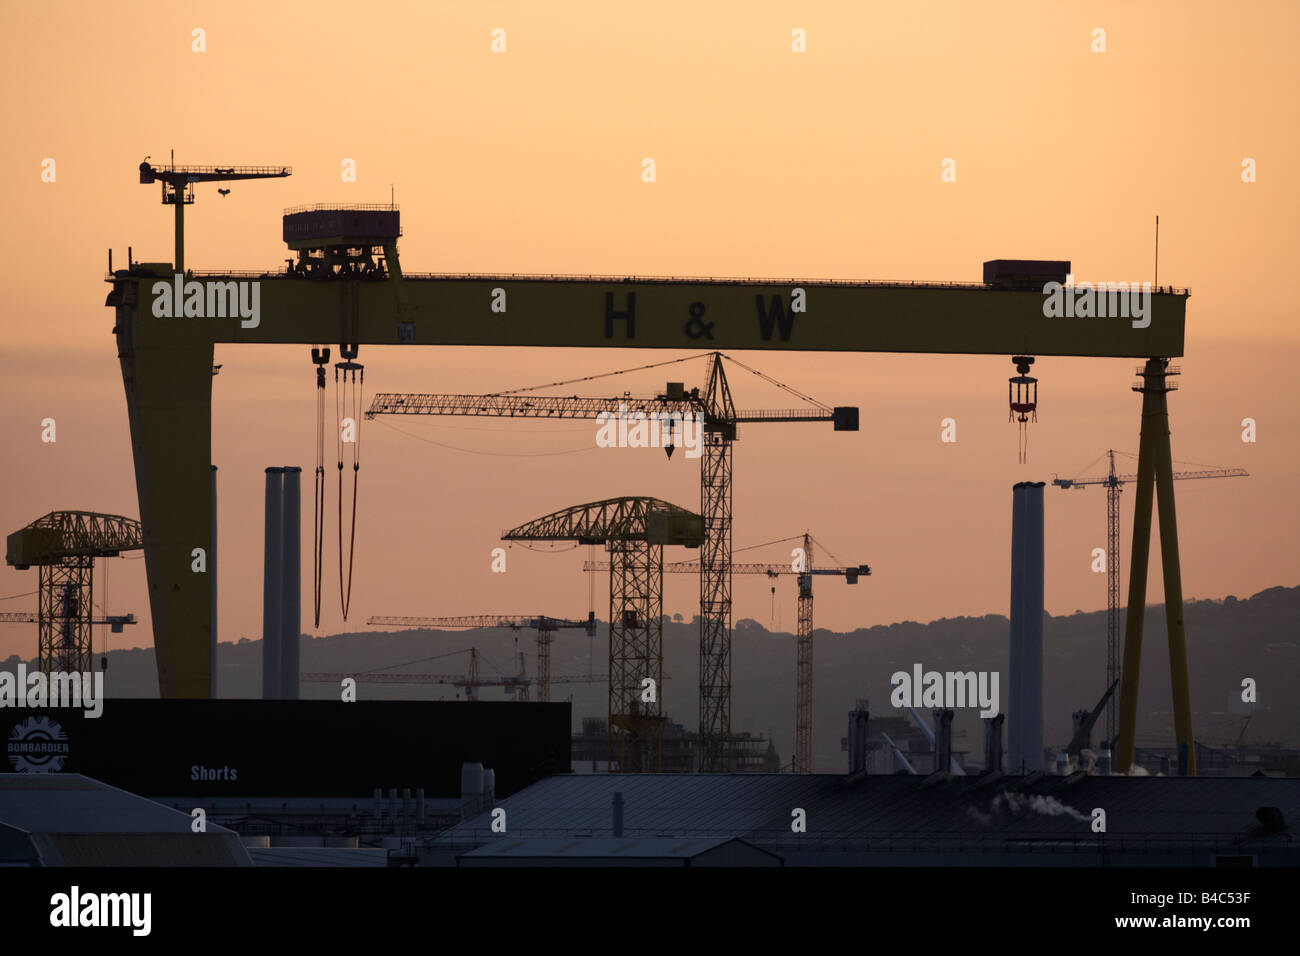 The Harland and Wolff shipyard cranes belfast city centre northern ireland uk - Stock Image